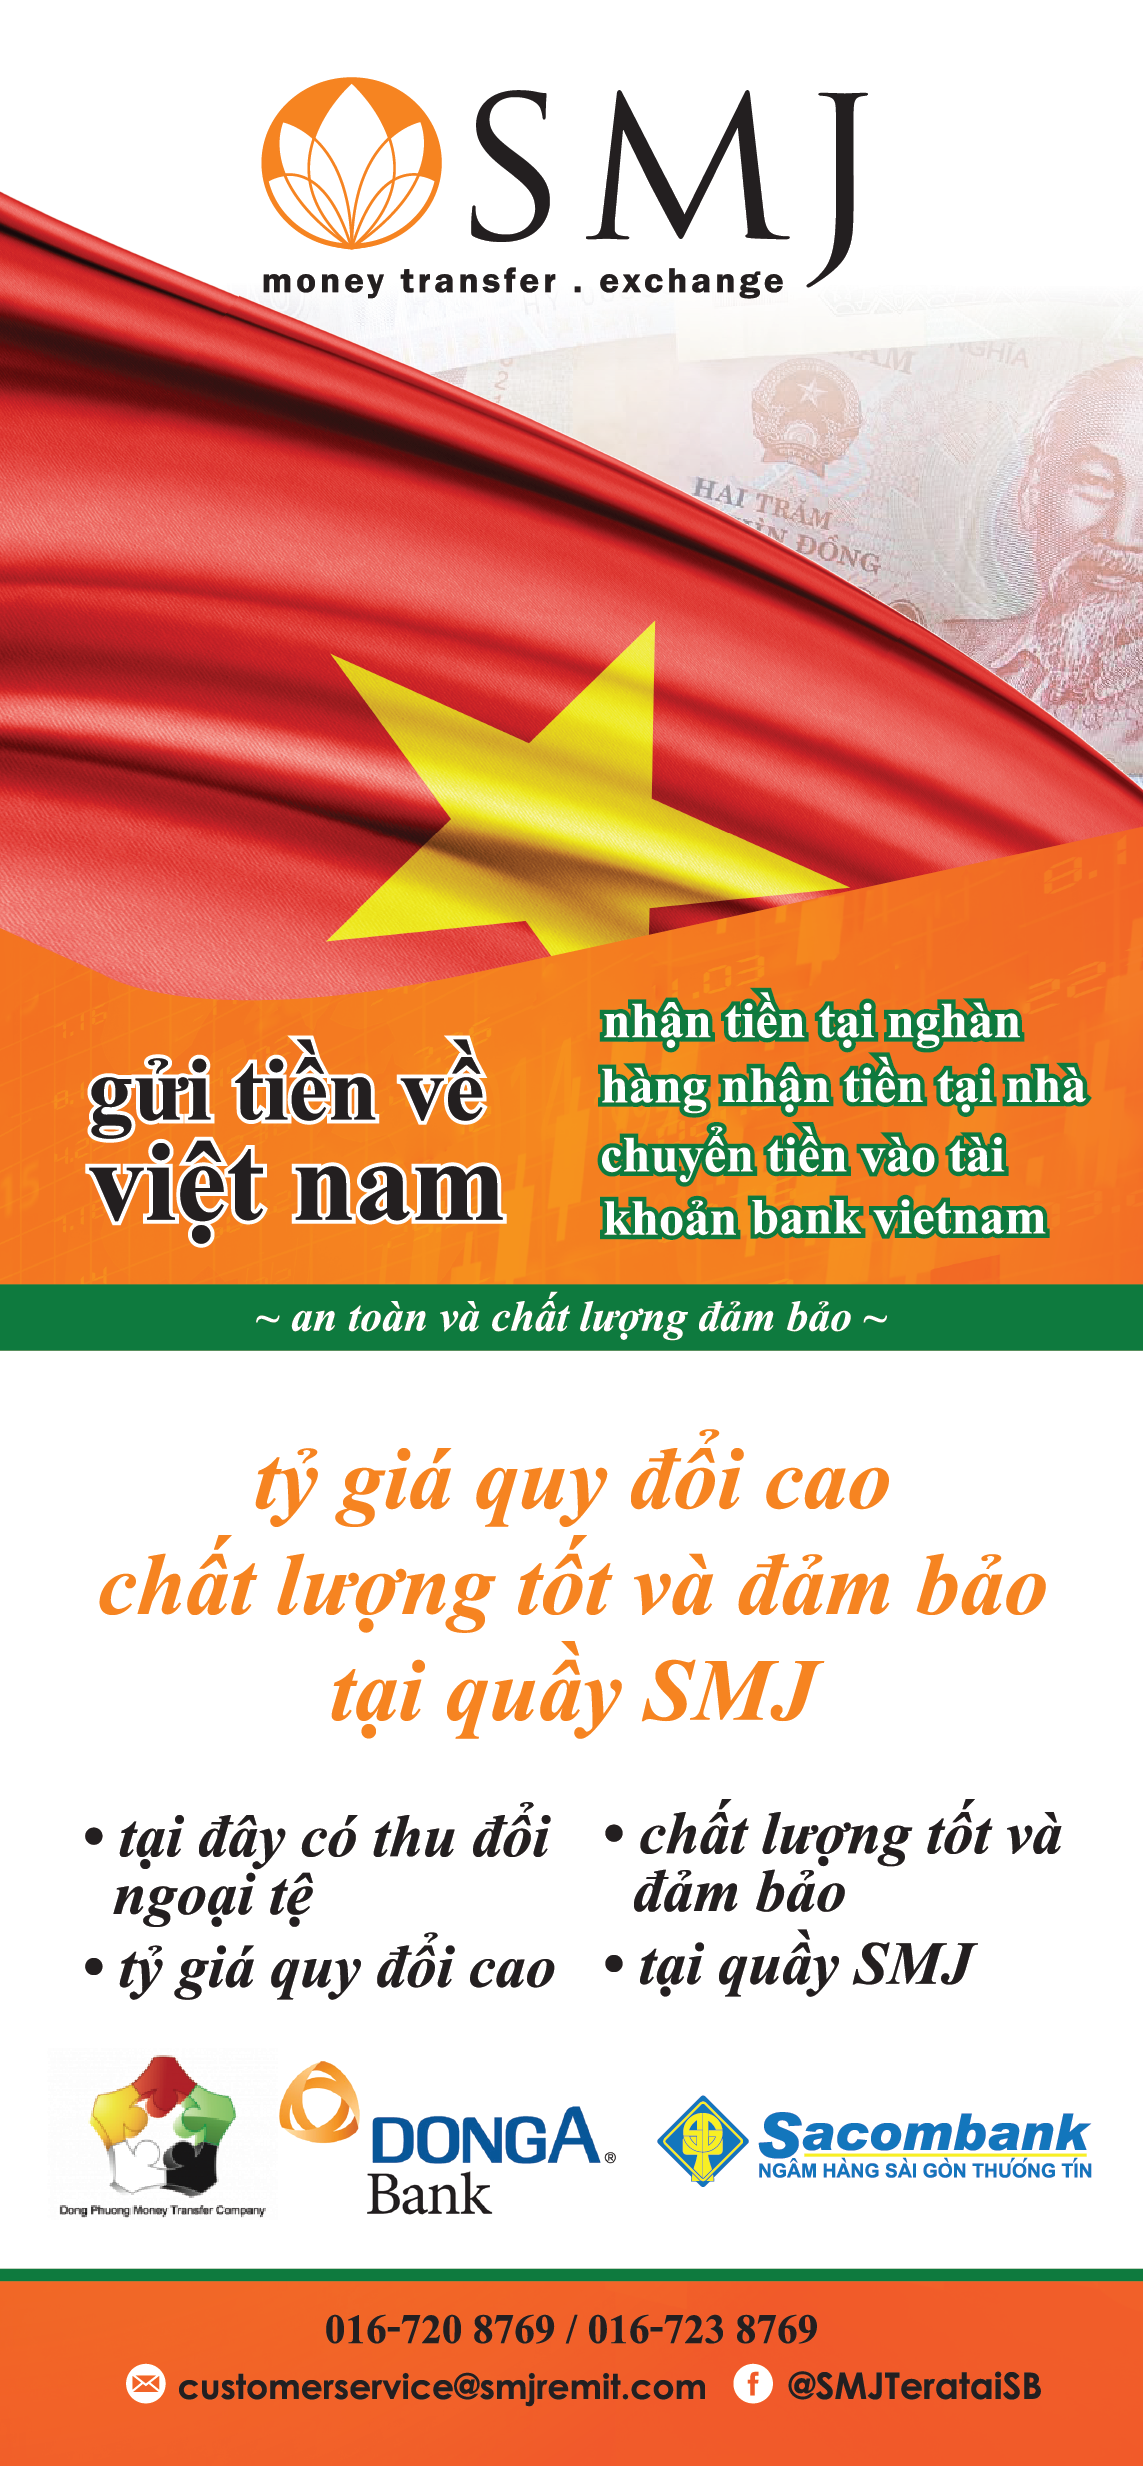 Send Money to Vietnam